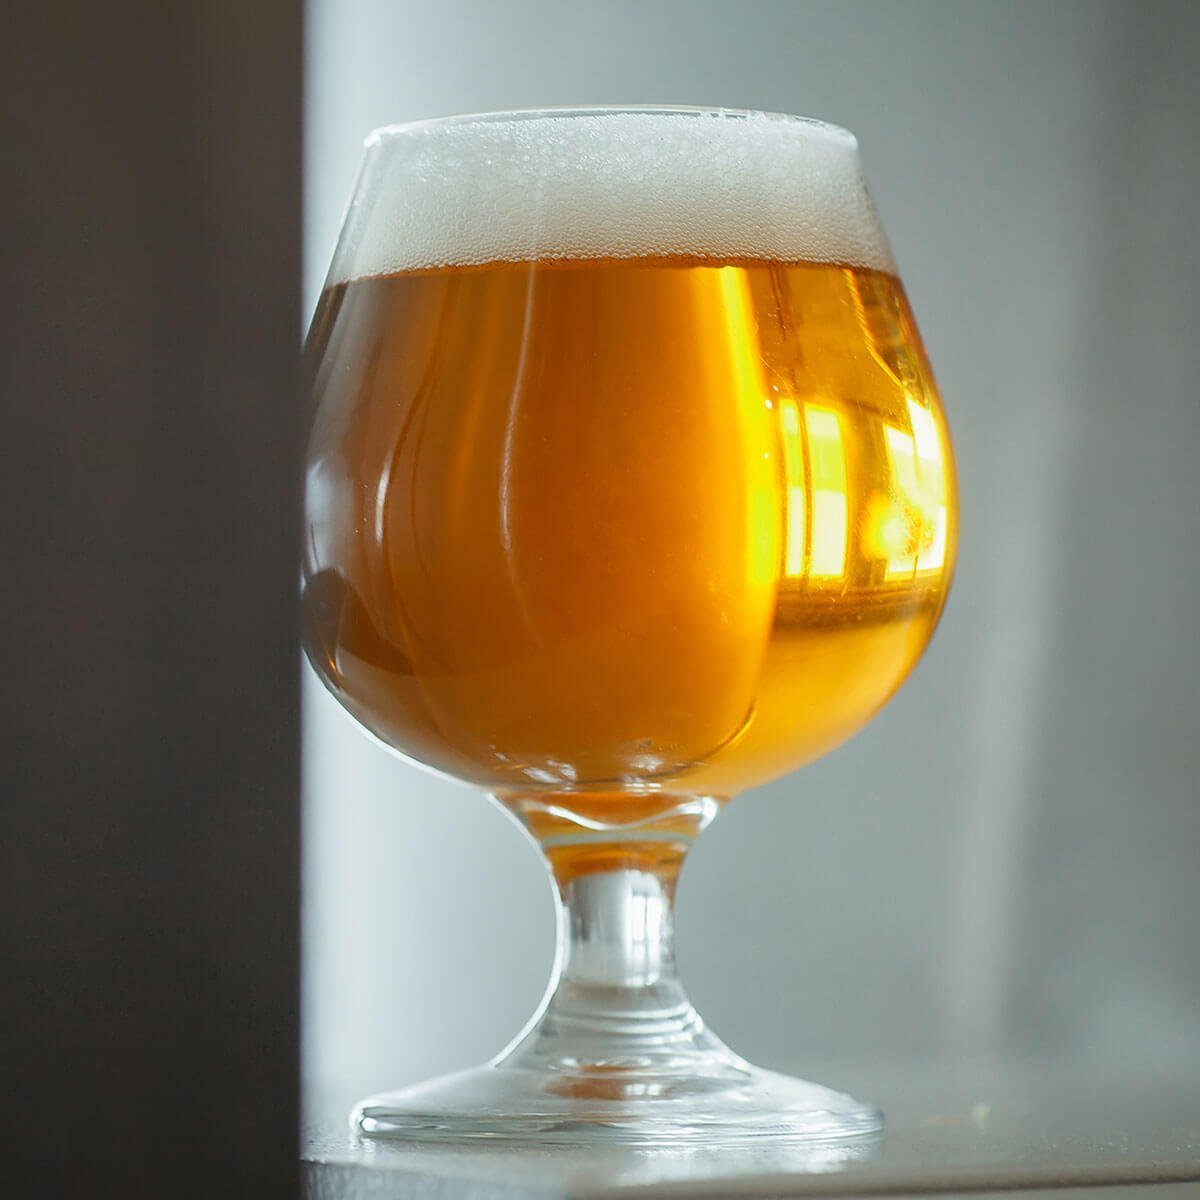 A Berliner Weisse in a Snifter Glass